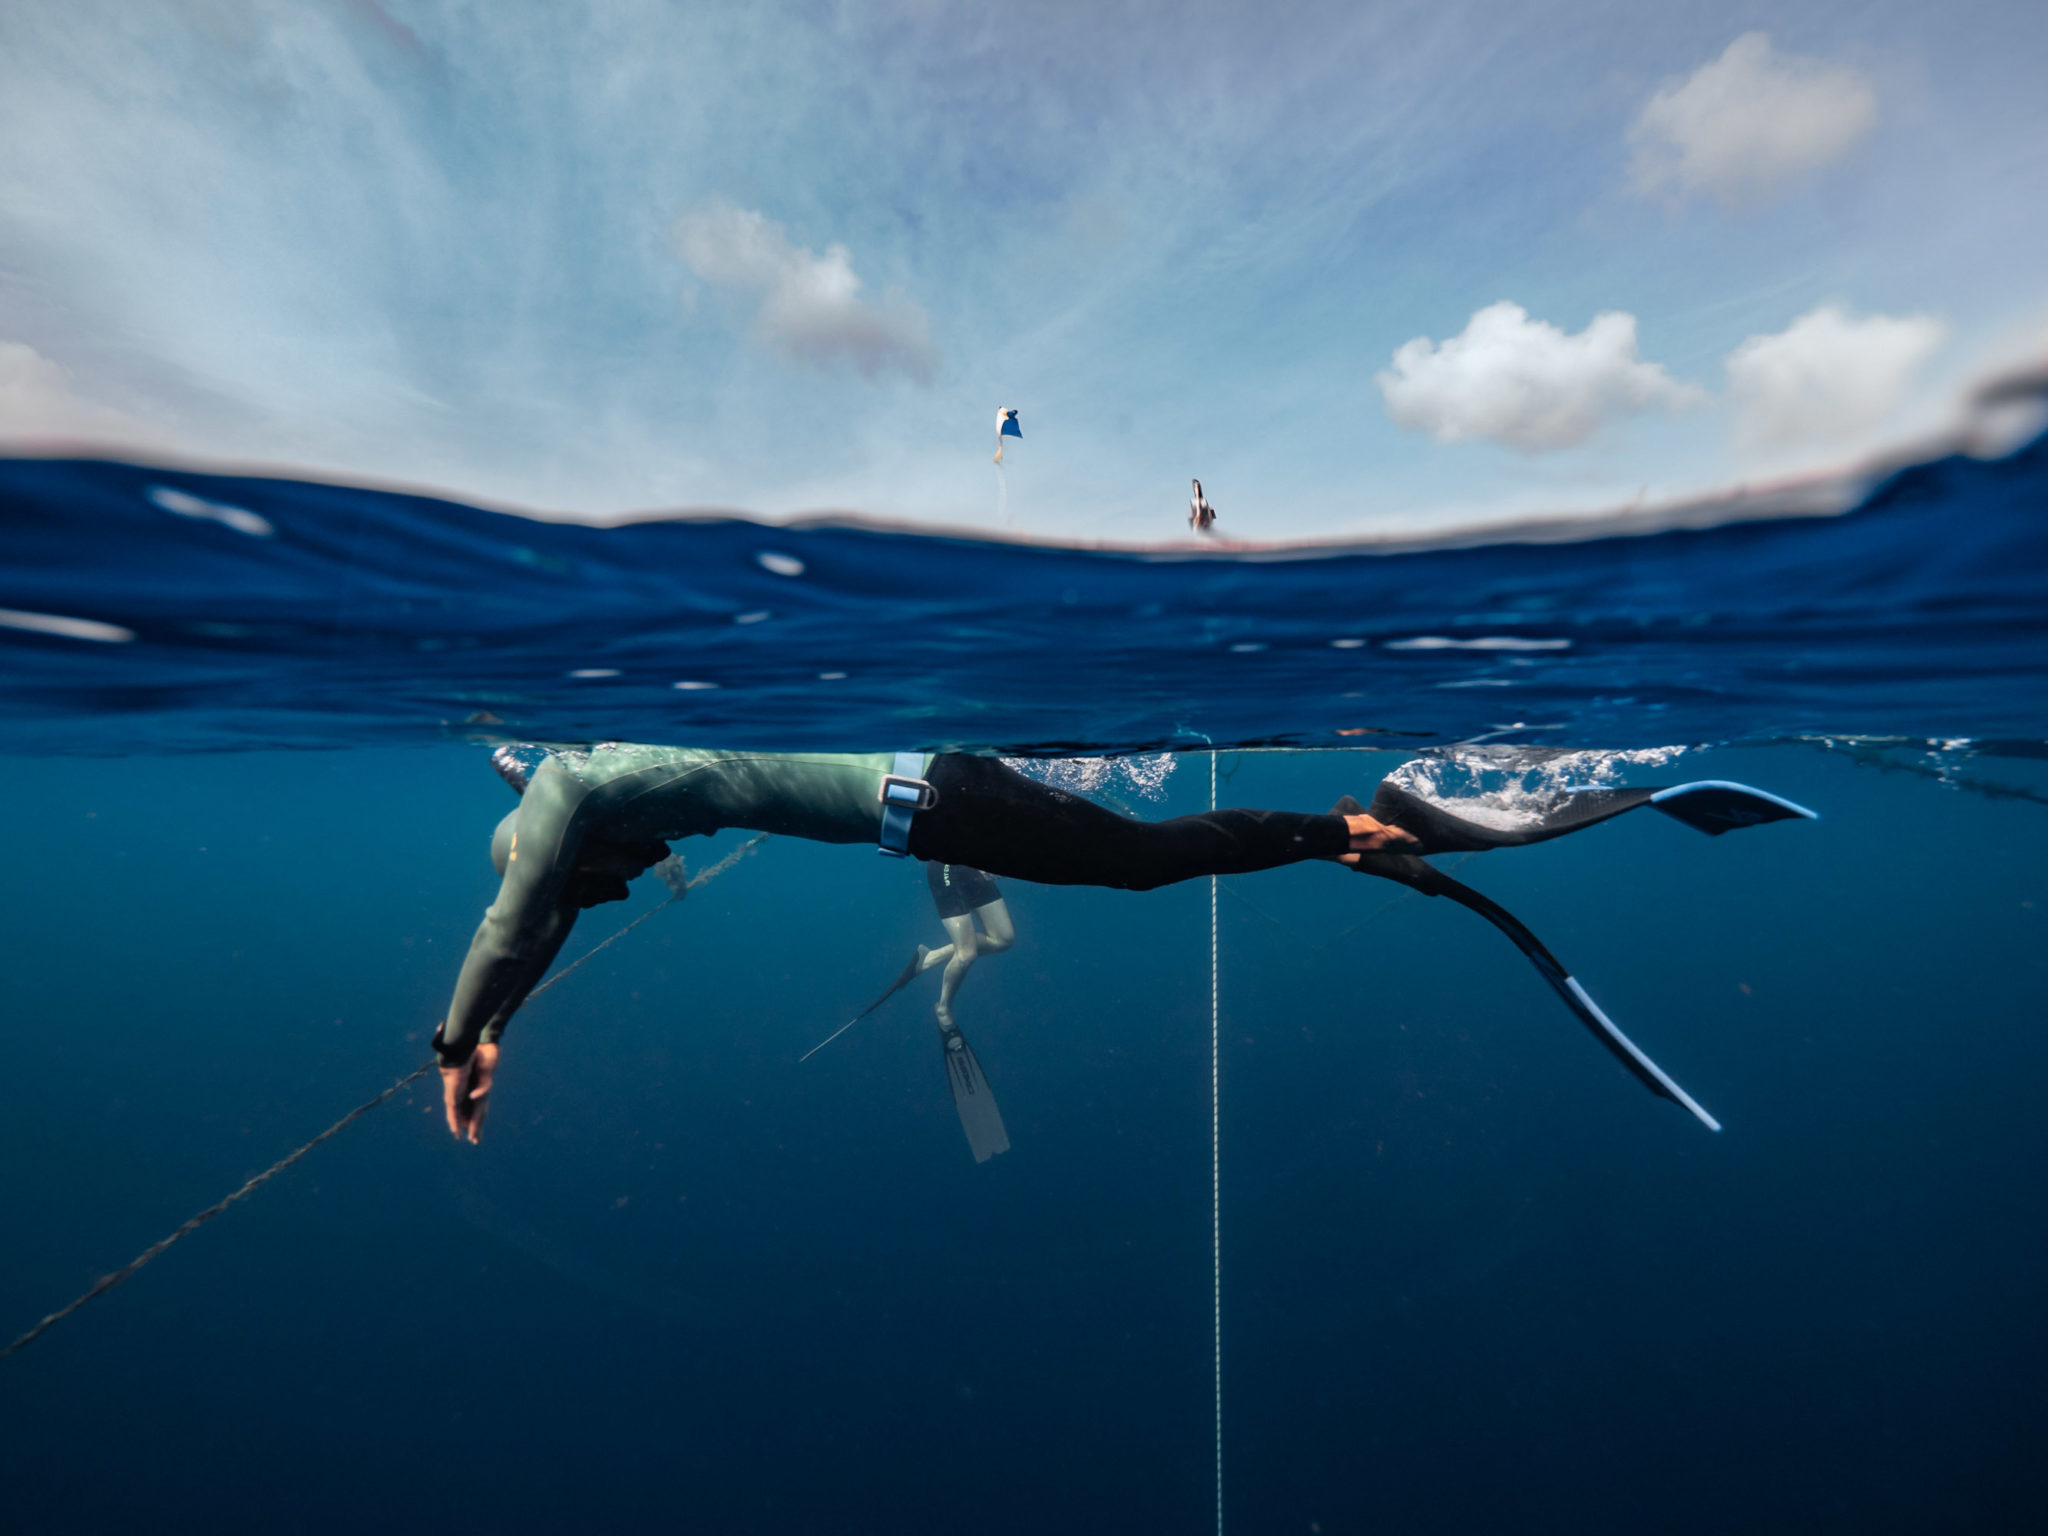 freediving blog, Freediving Blog